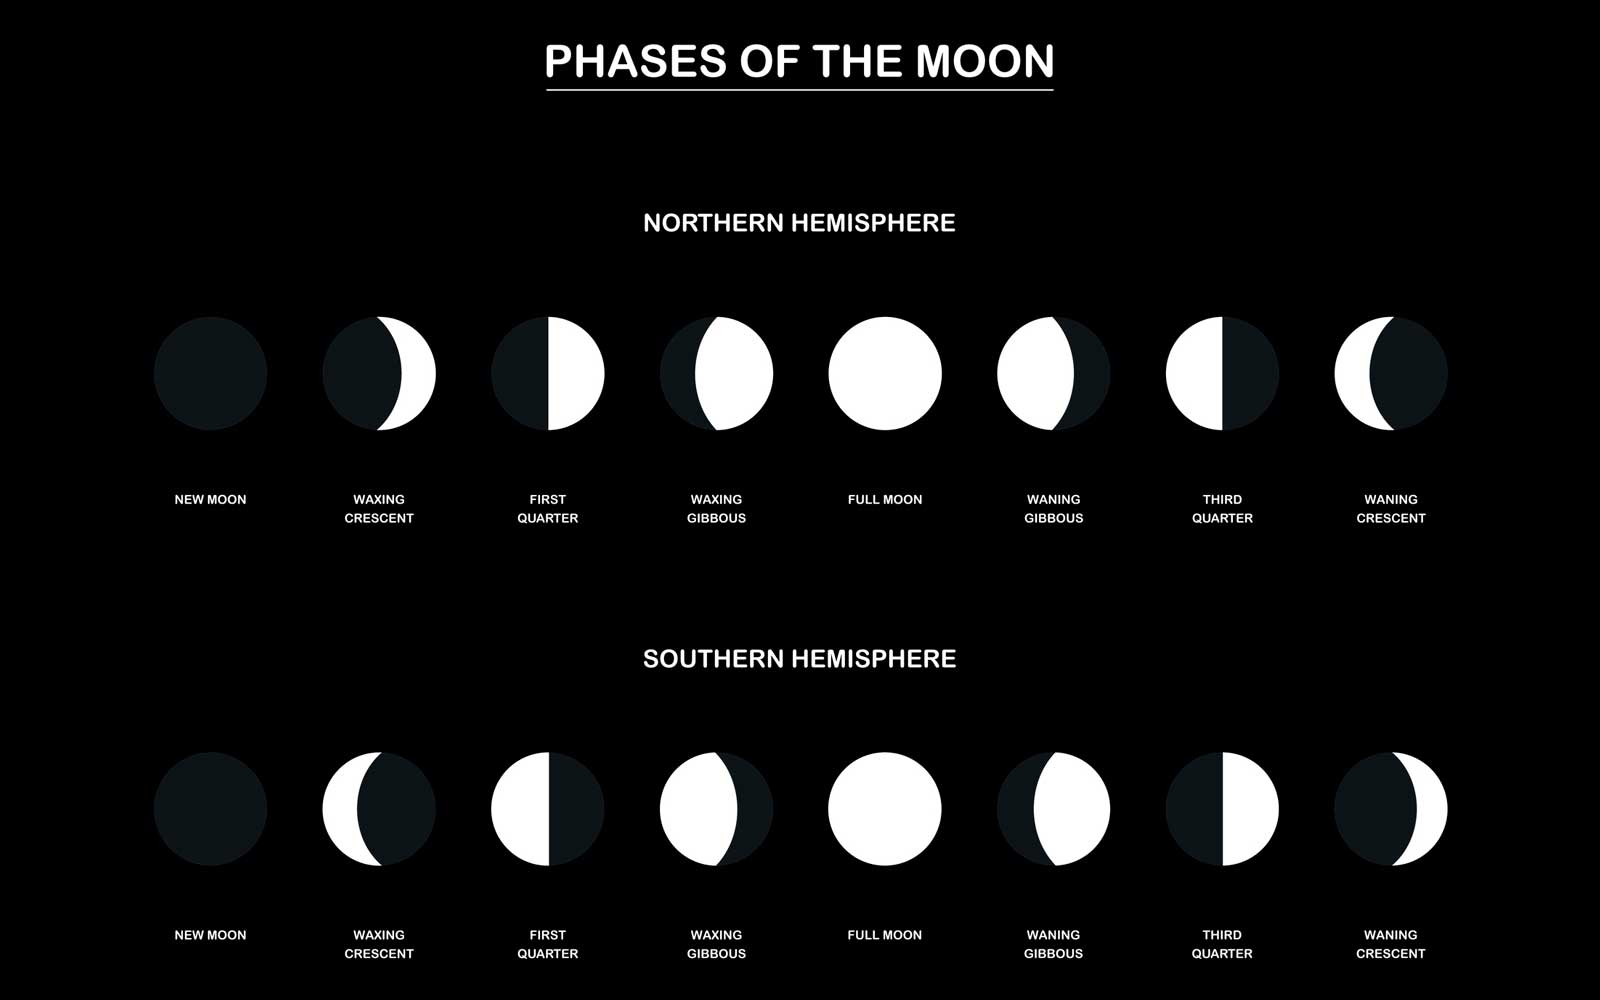 Lunar phases - chart with the contrary phases of the moon observed from the northern and southern hemisphere of planet earth.